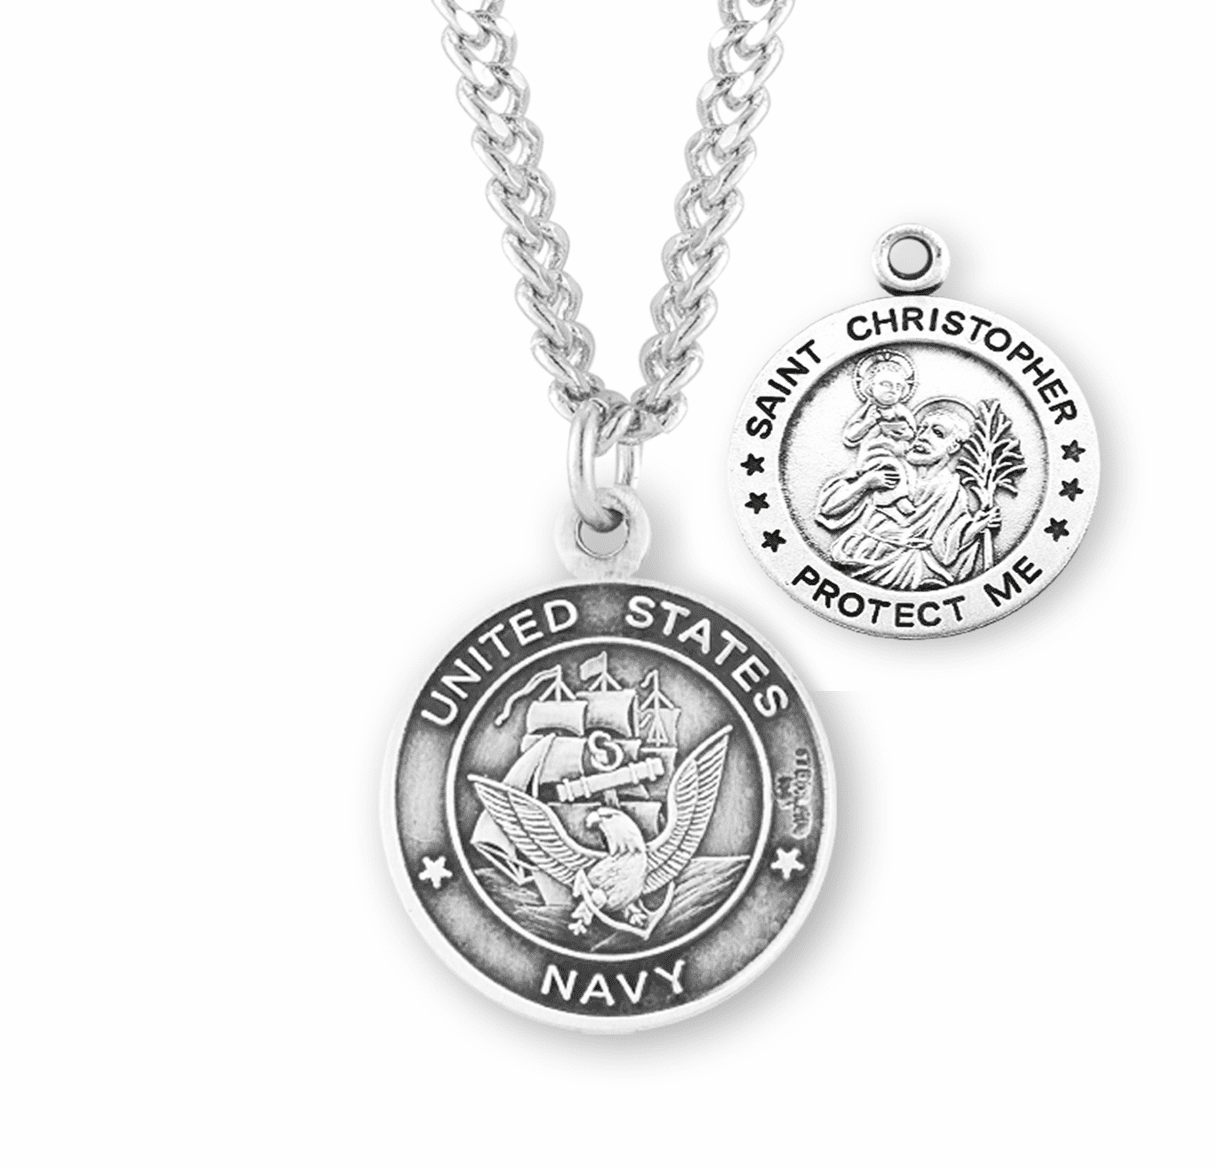 Military St Christopher Navy Sterling Silver Medal Necklace by HMH Religious